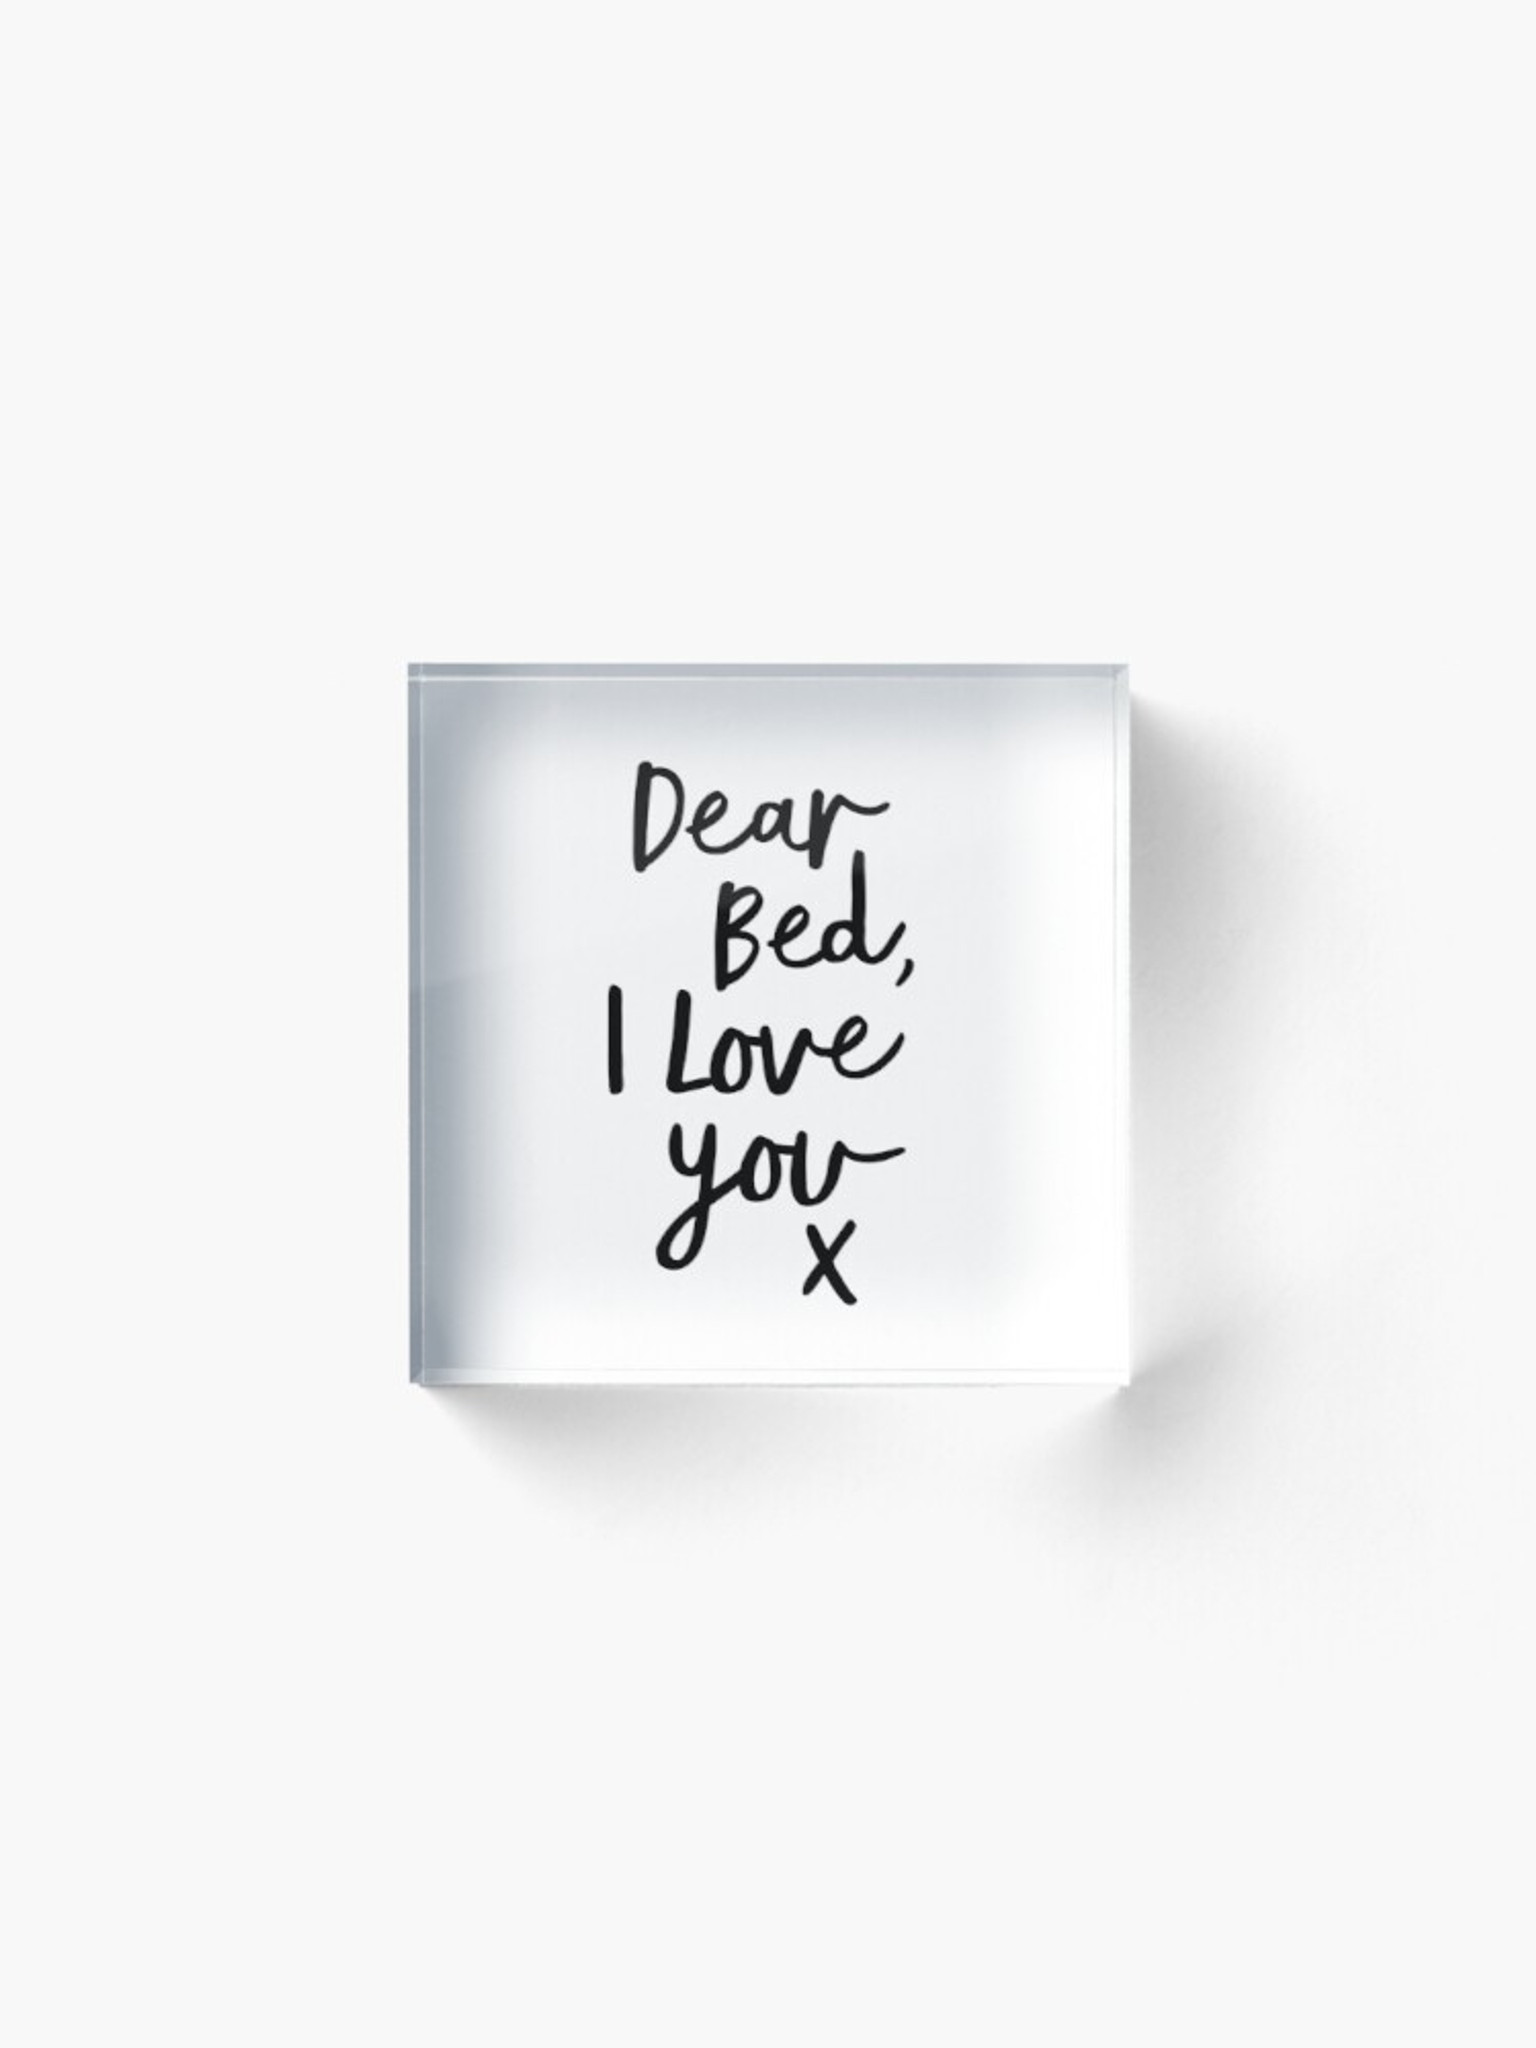 black and white lucite clear Acrylic Block Square Funny Wall Art